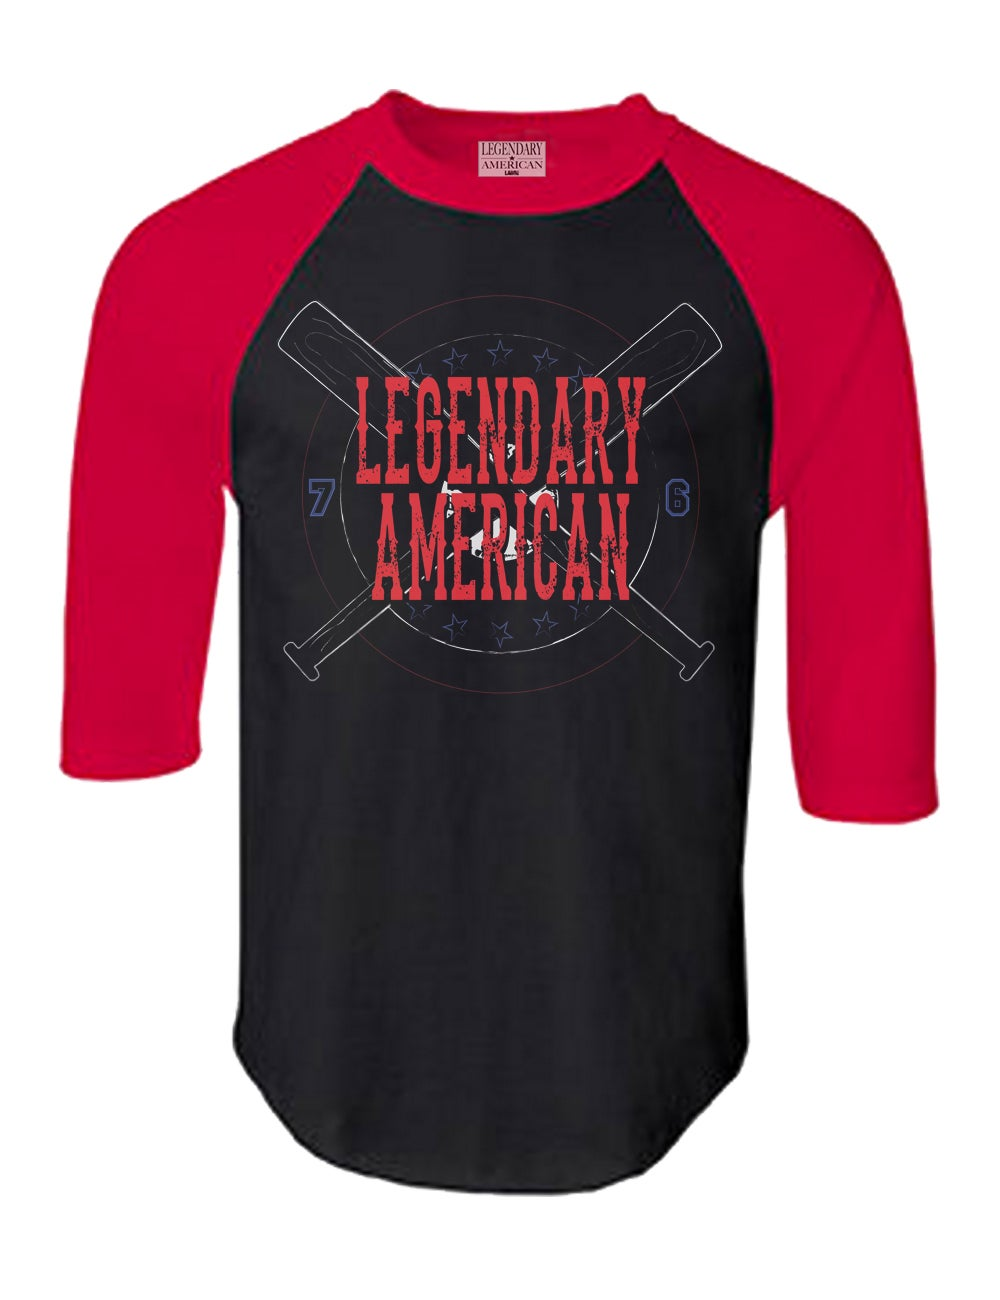 Image of Legendary American Baseball raglan black and red